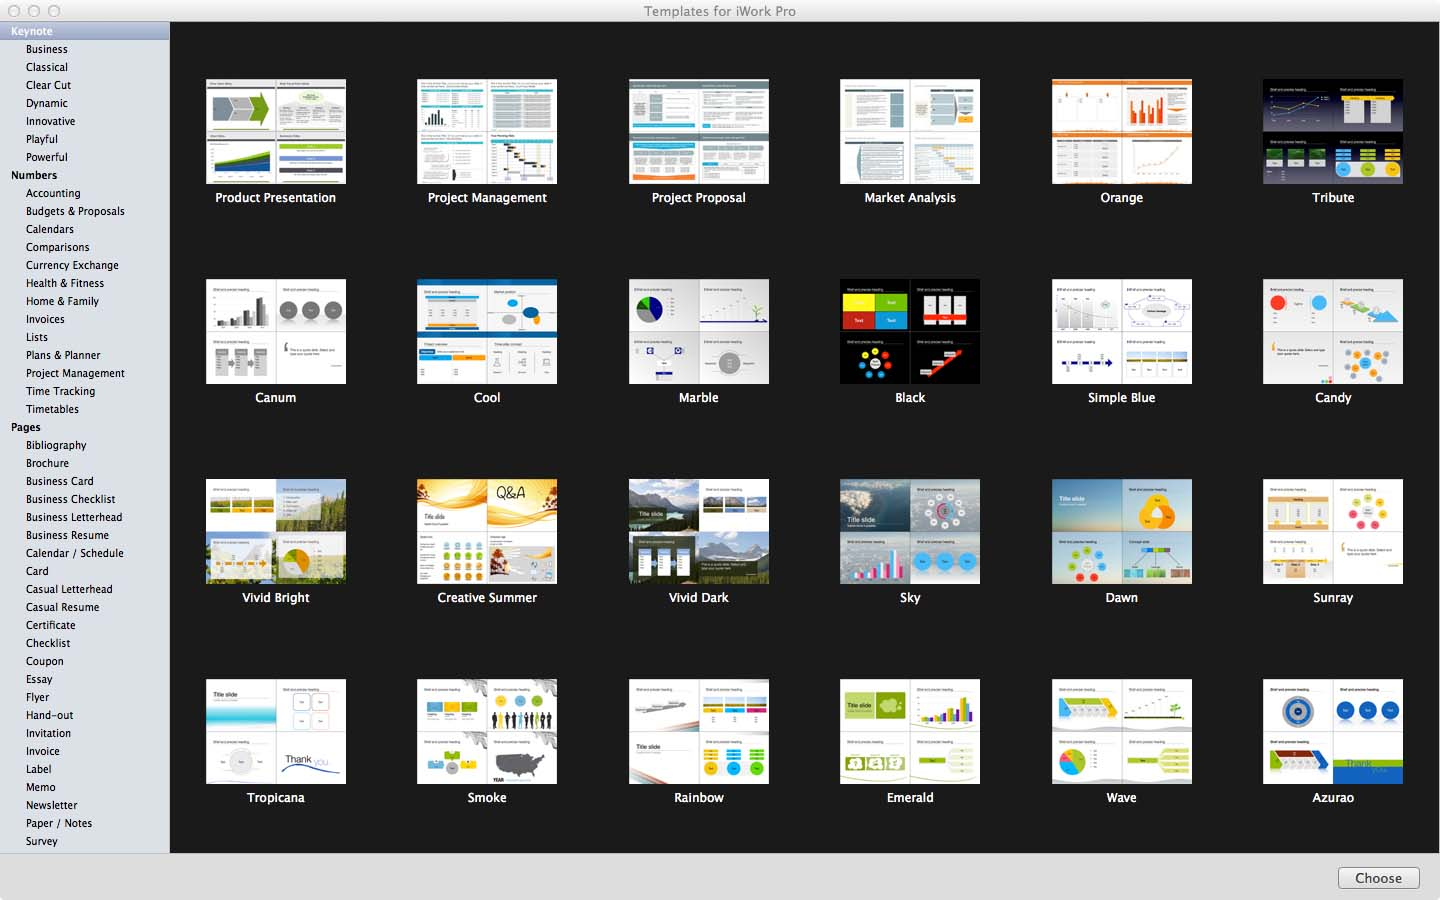 Free Business Card Templates Mac Pages For Iwork Pro Made Use